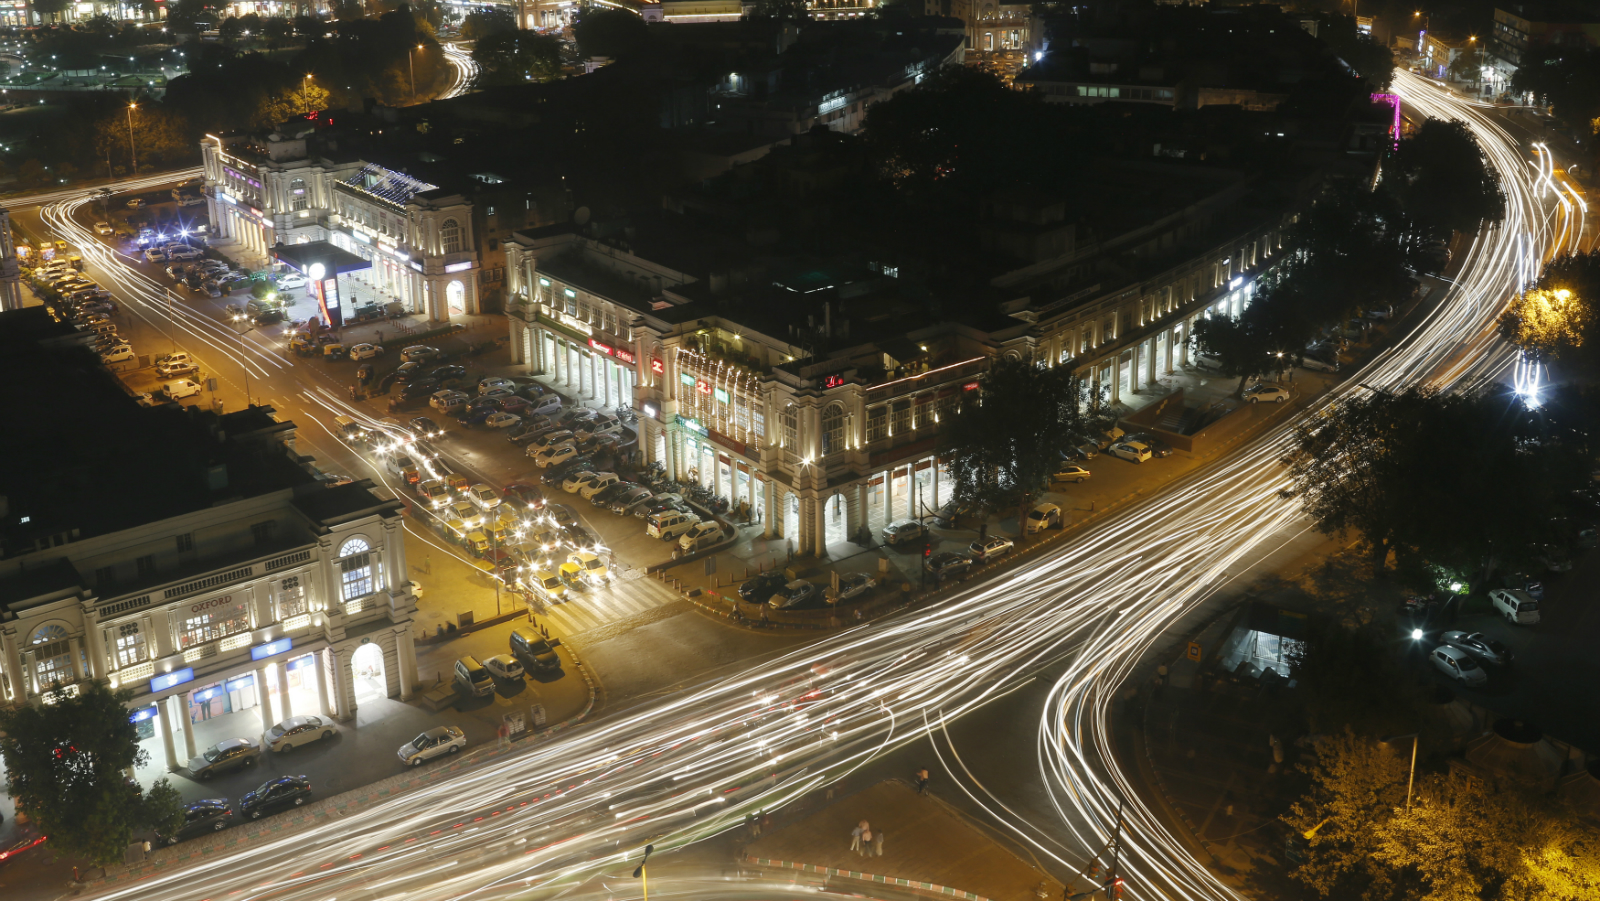 Vehicles move along New Delhi's Connaught Place during evening hours, October 28, 2014. India has the world's deadliest roads, the result of a flood of untrained drivers, inadequate law enforcement, badly maintained highways and cars that fail modern crash tests. Alarmed by the increasing fatalities, the new government has begun a five-year project to cut road deaths by a fifth every year, part of the most ambitious overhaul of highway laws since independence in 1947. Picture taken October 28, 2014. To match Feature INDIA-DRIVING/ Picture is taken using slow shutter speed.